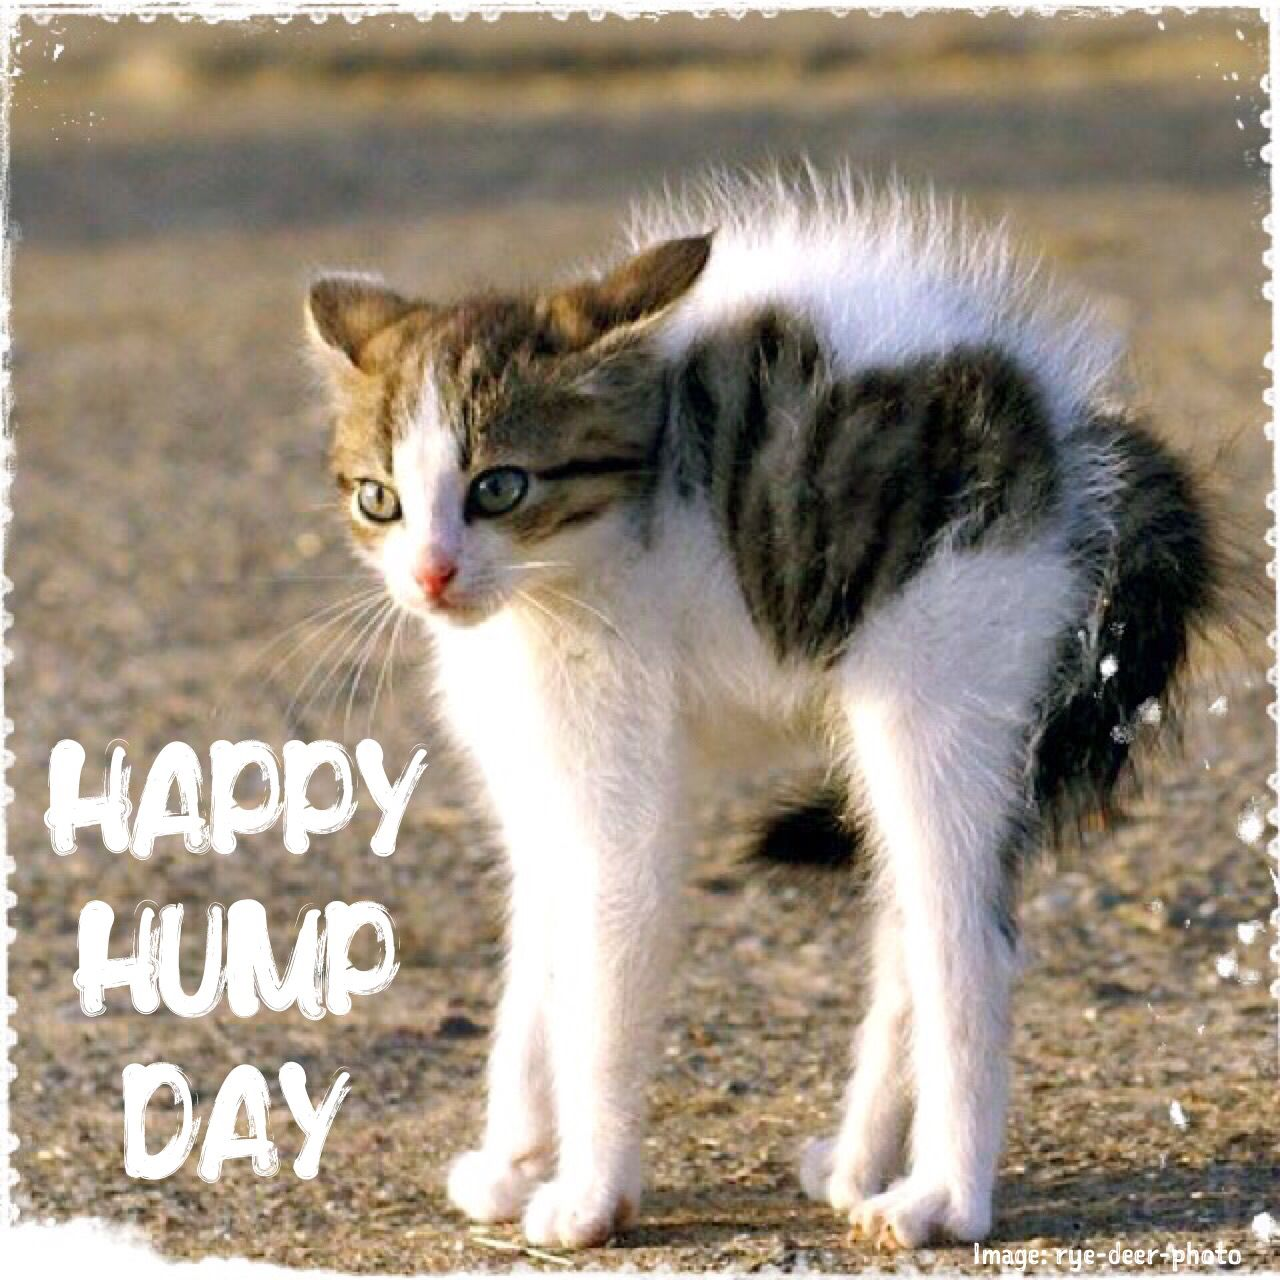 Wednesday Humor Happy Hump Day Animal Funny Cute Cat Halfway Through The Week Weekend Right Around The Corner Enjoy Today  F F  Aa